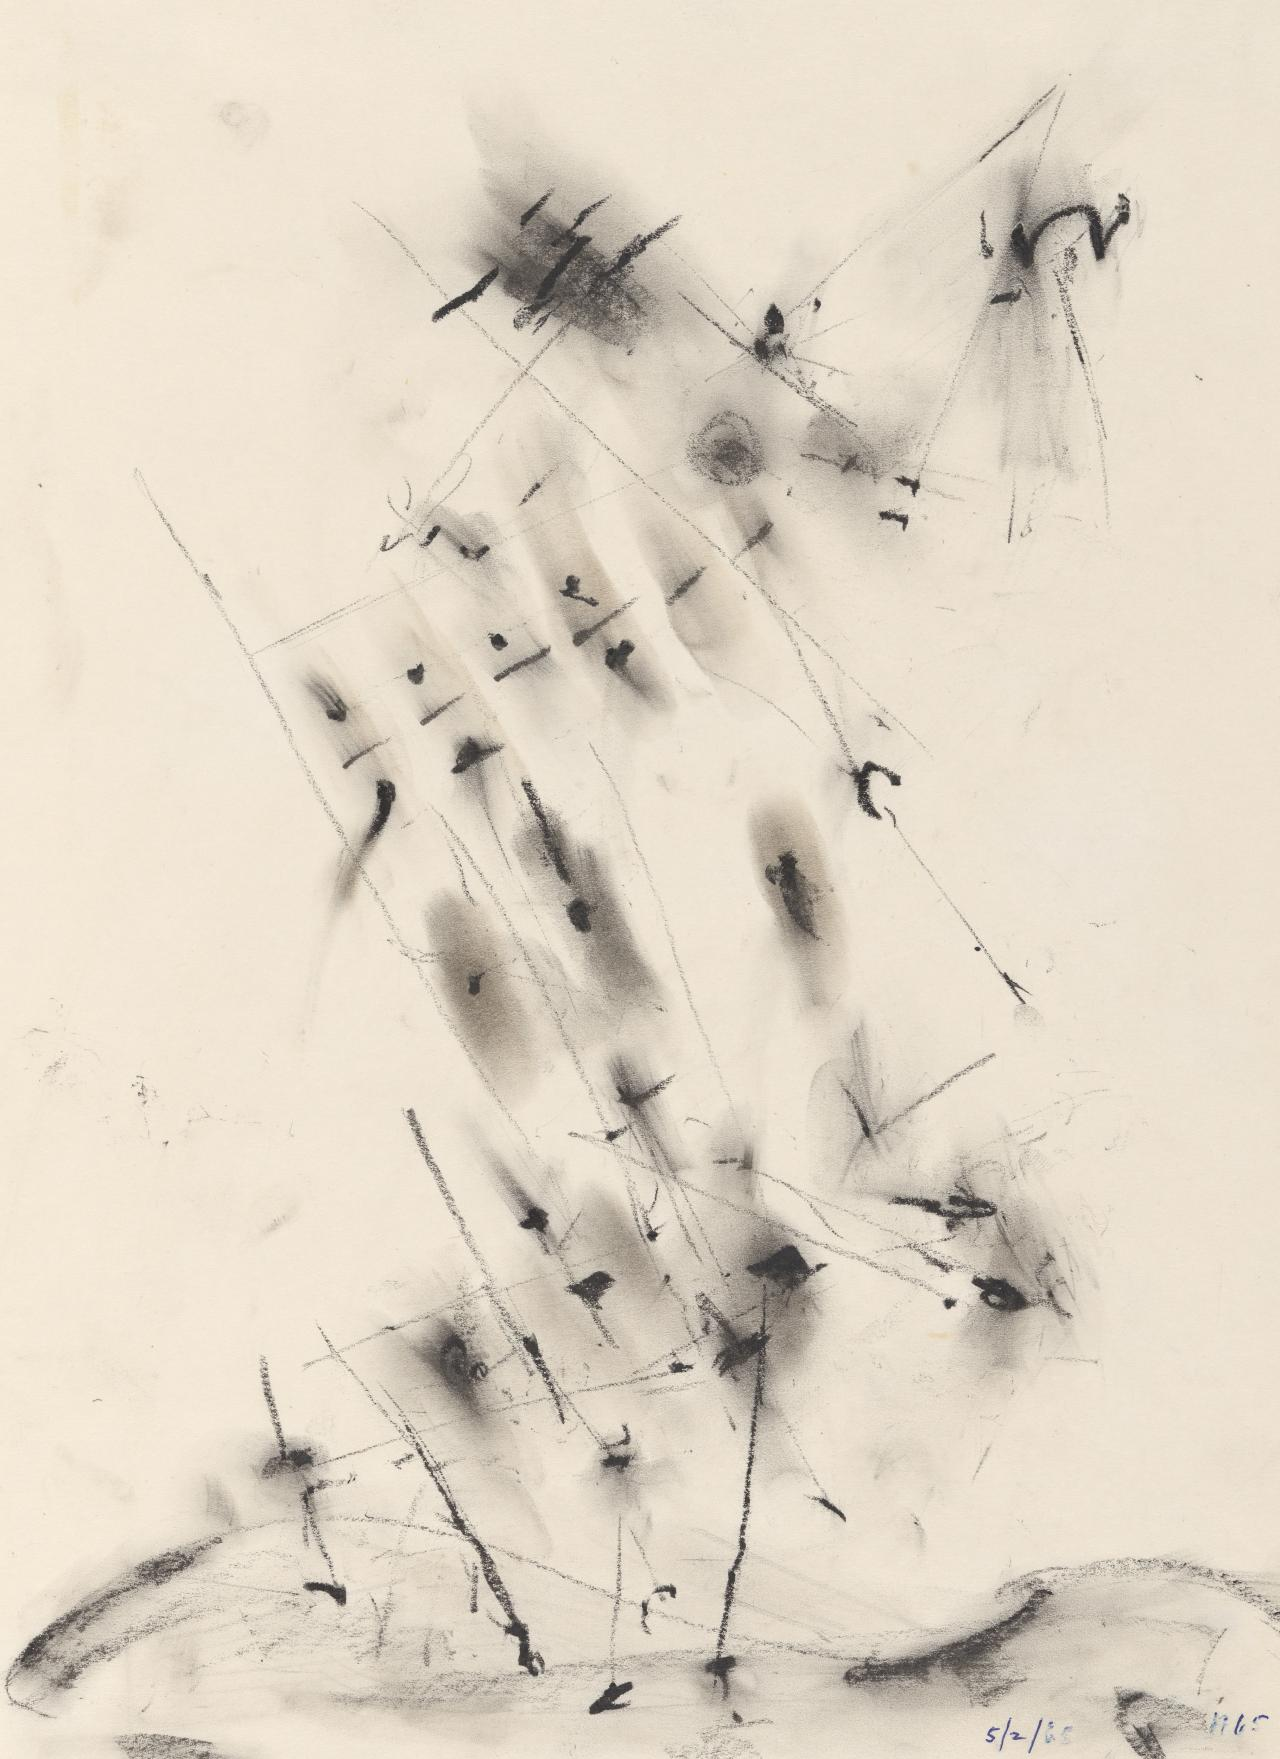 Study for the lithograph Structures in a landscape